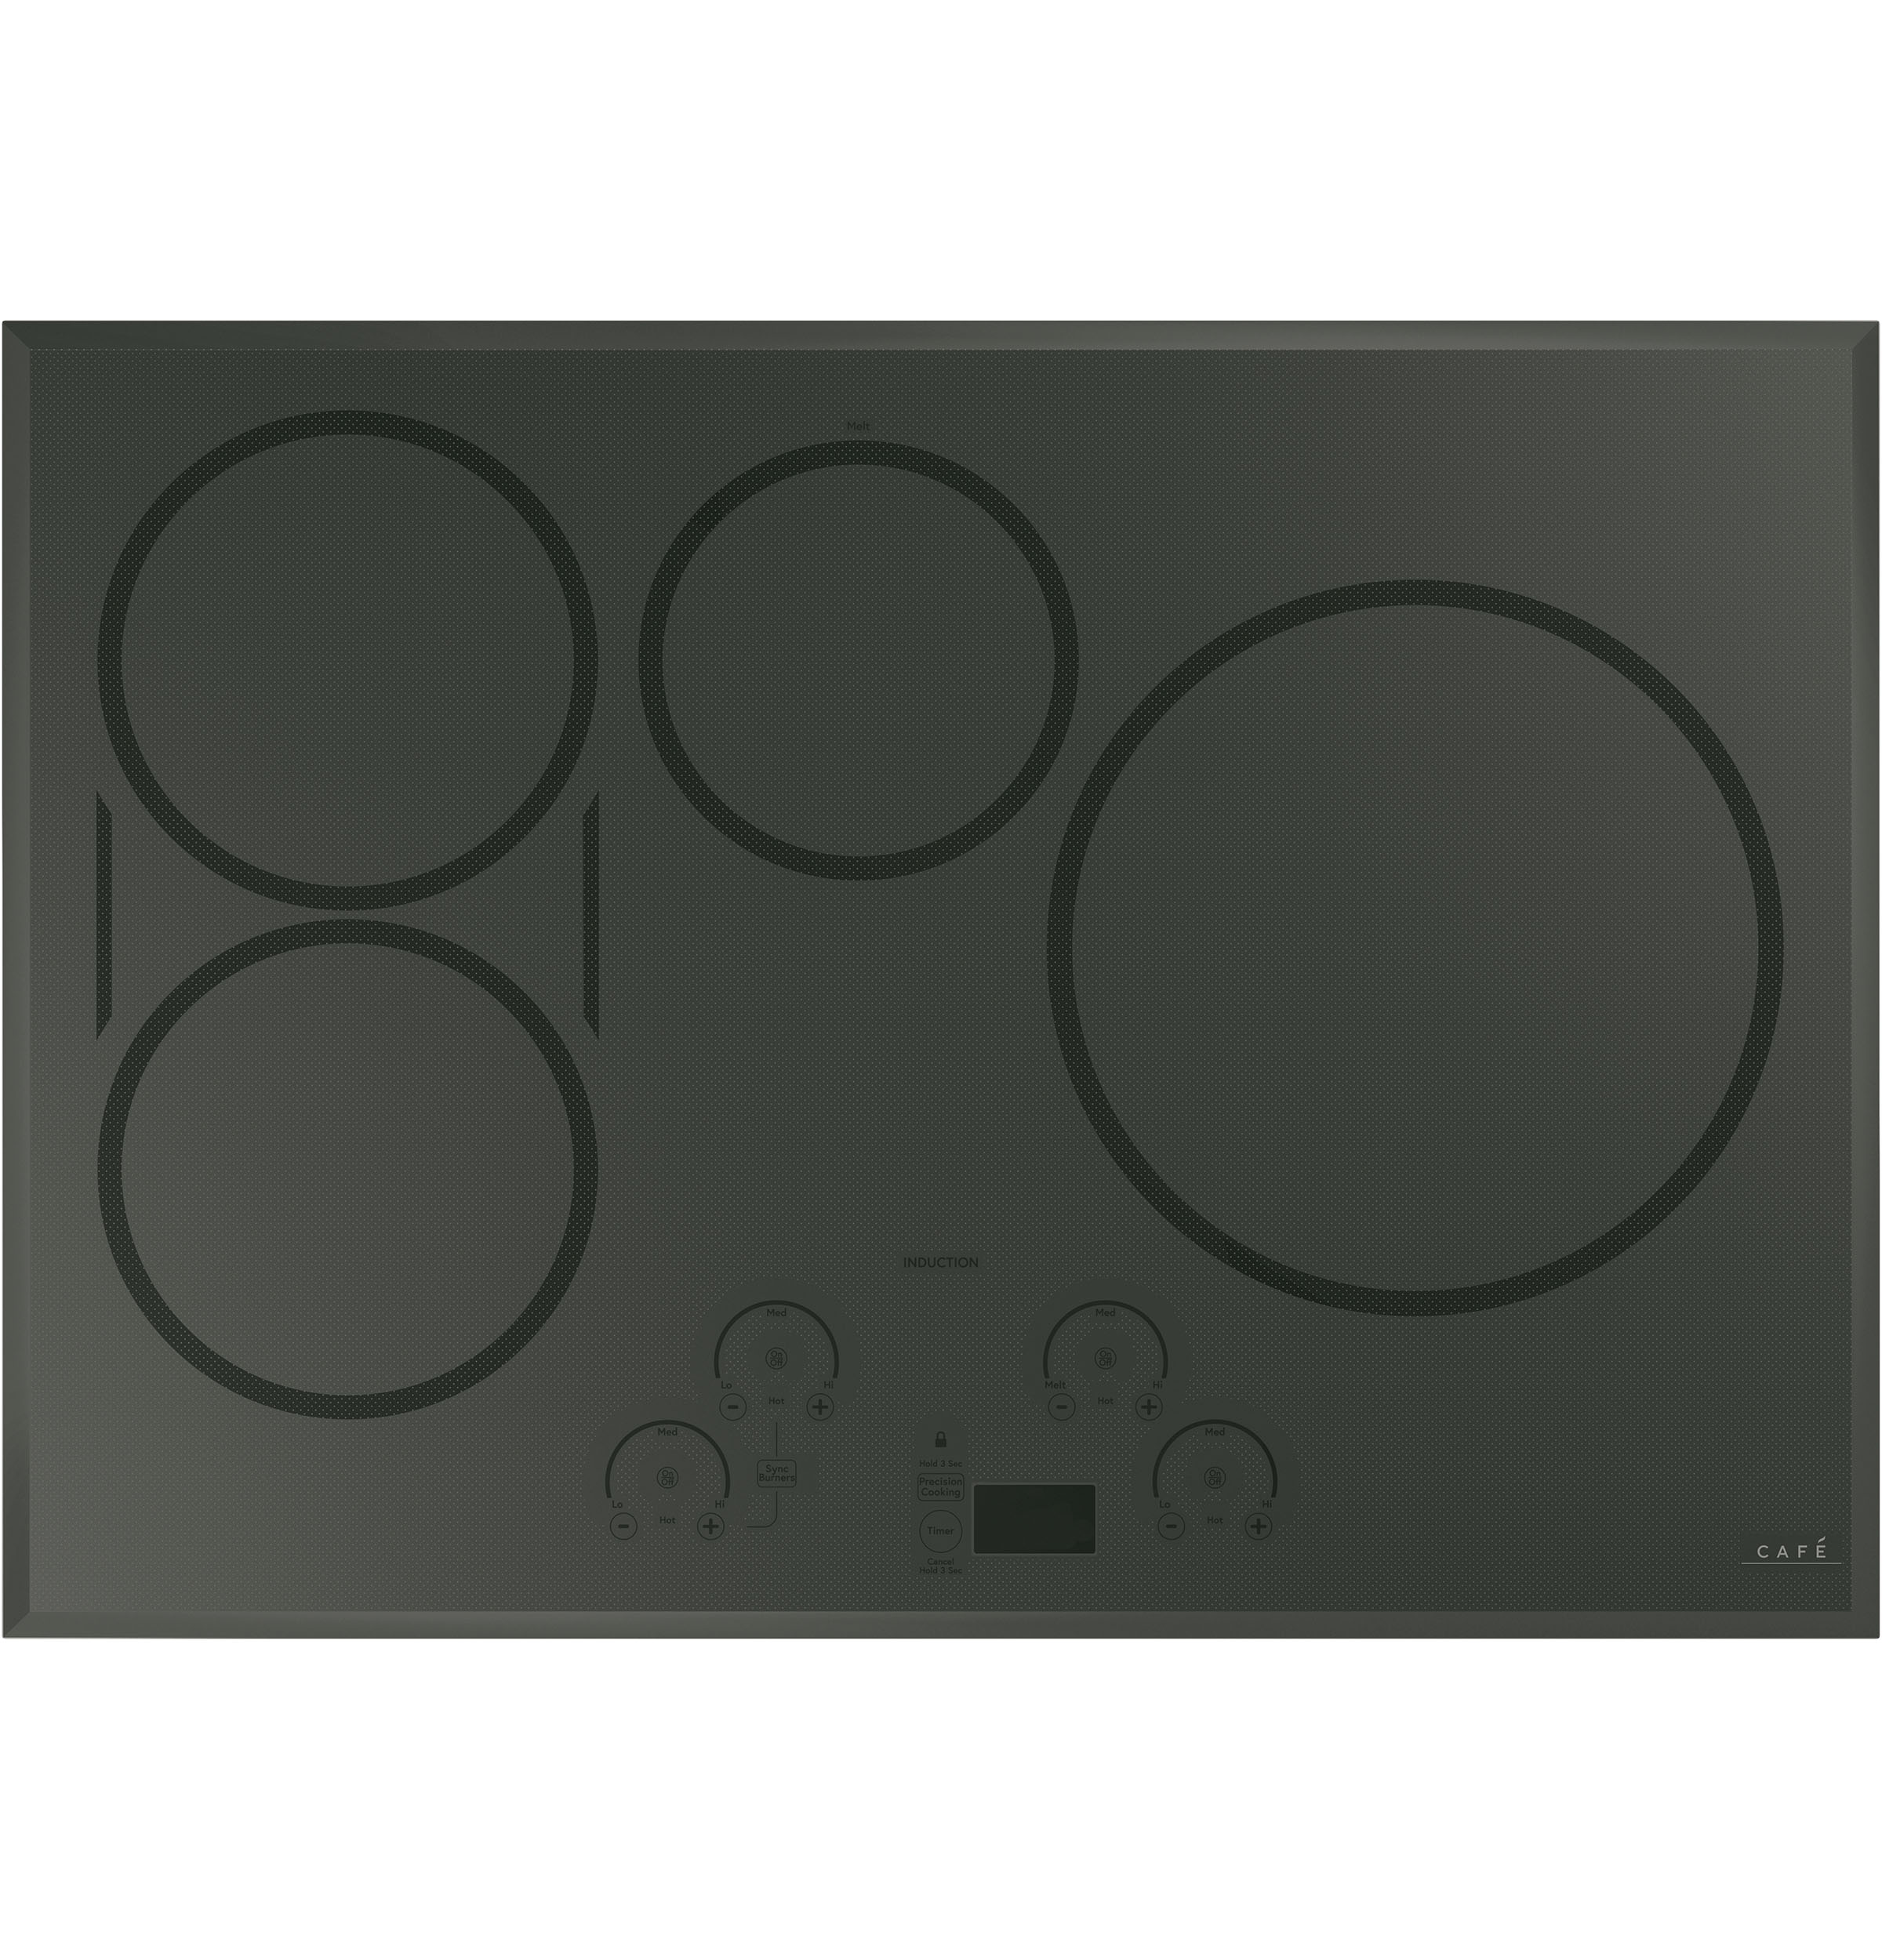 "Cafe Café™ 30"" Smart Touch-Control Induction Cooktop"